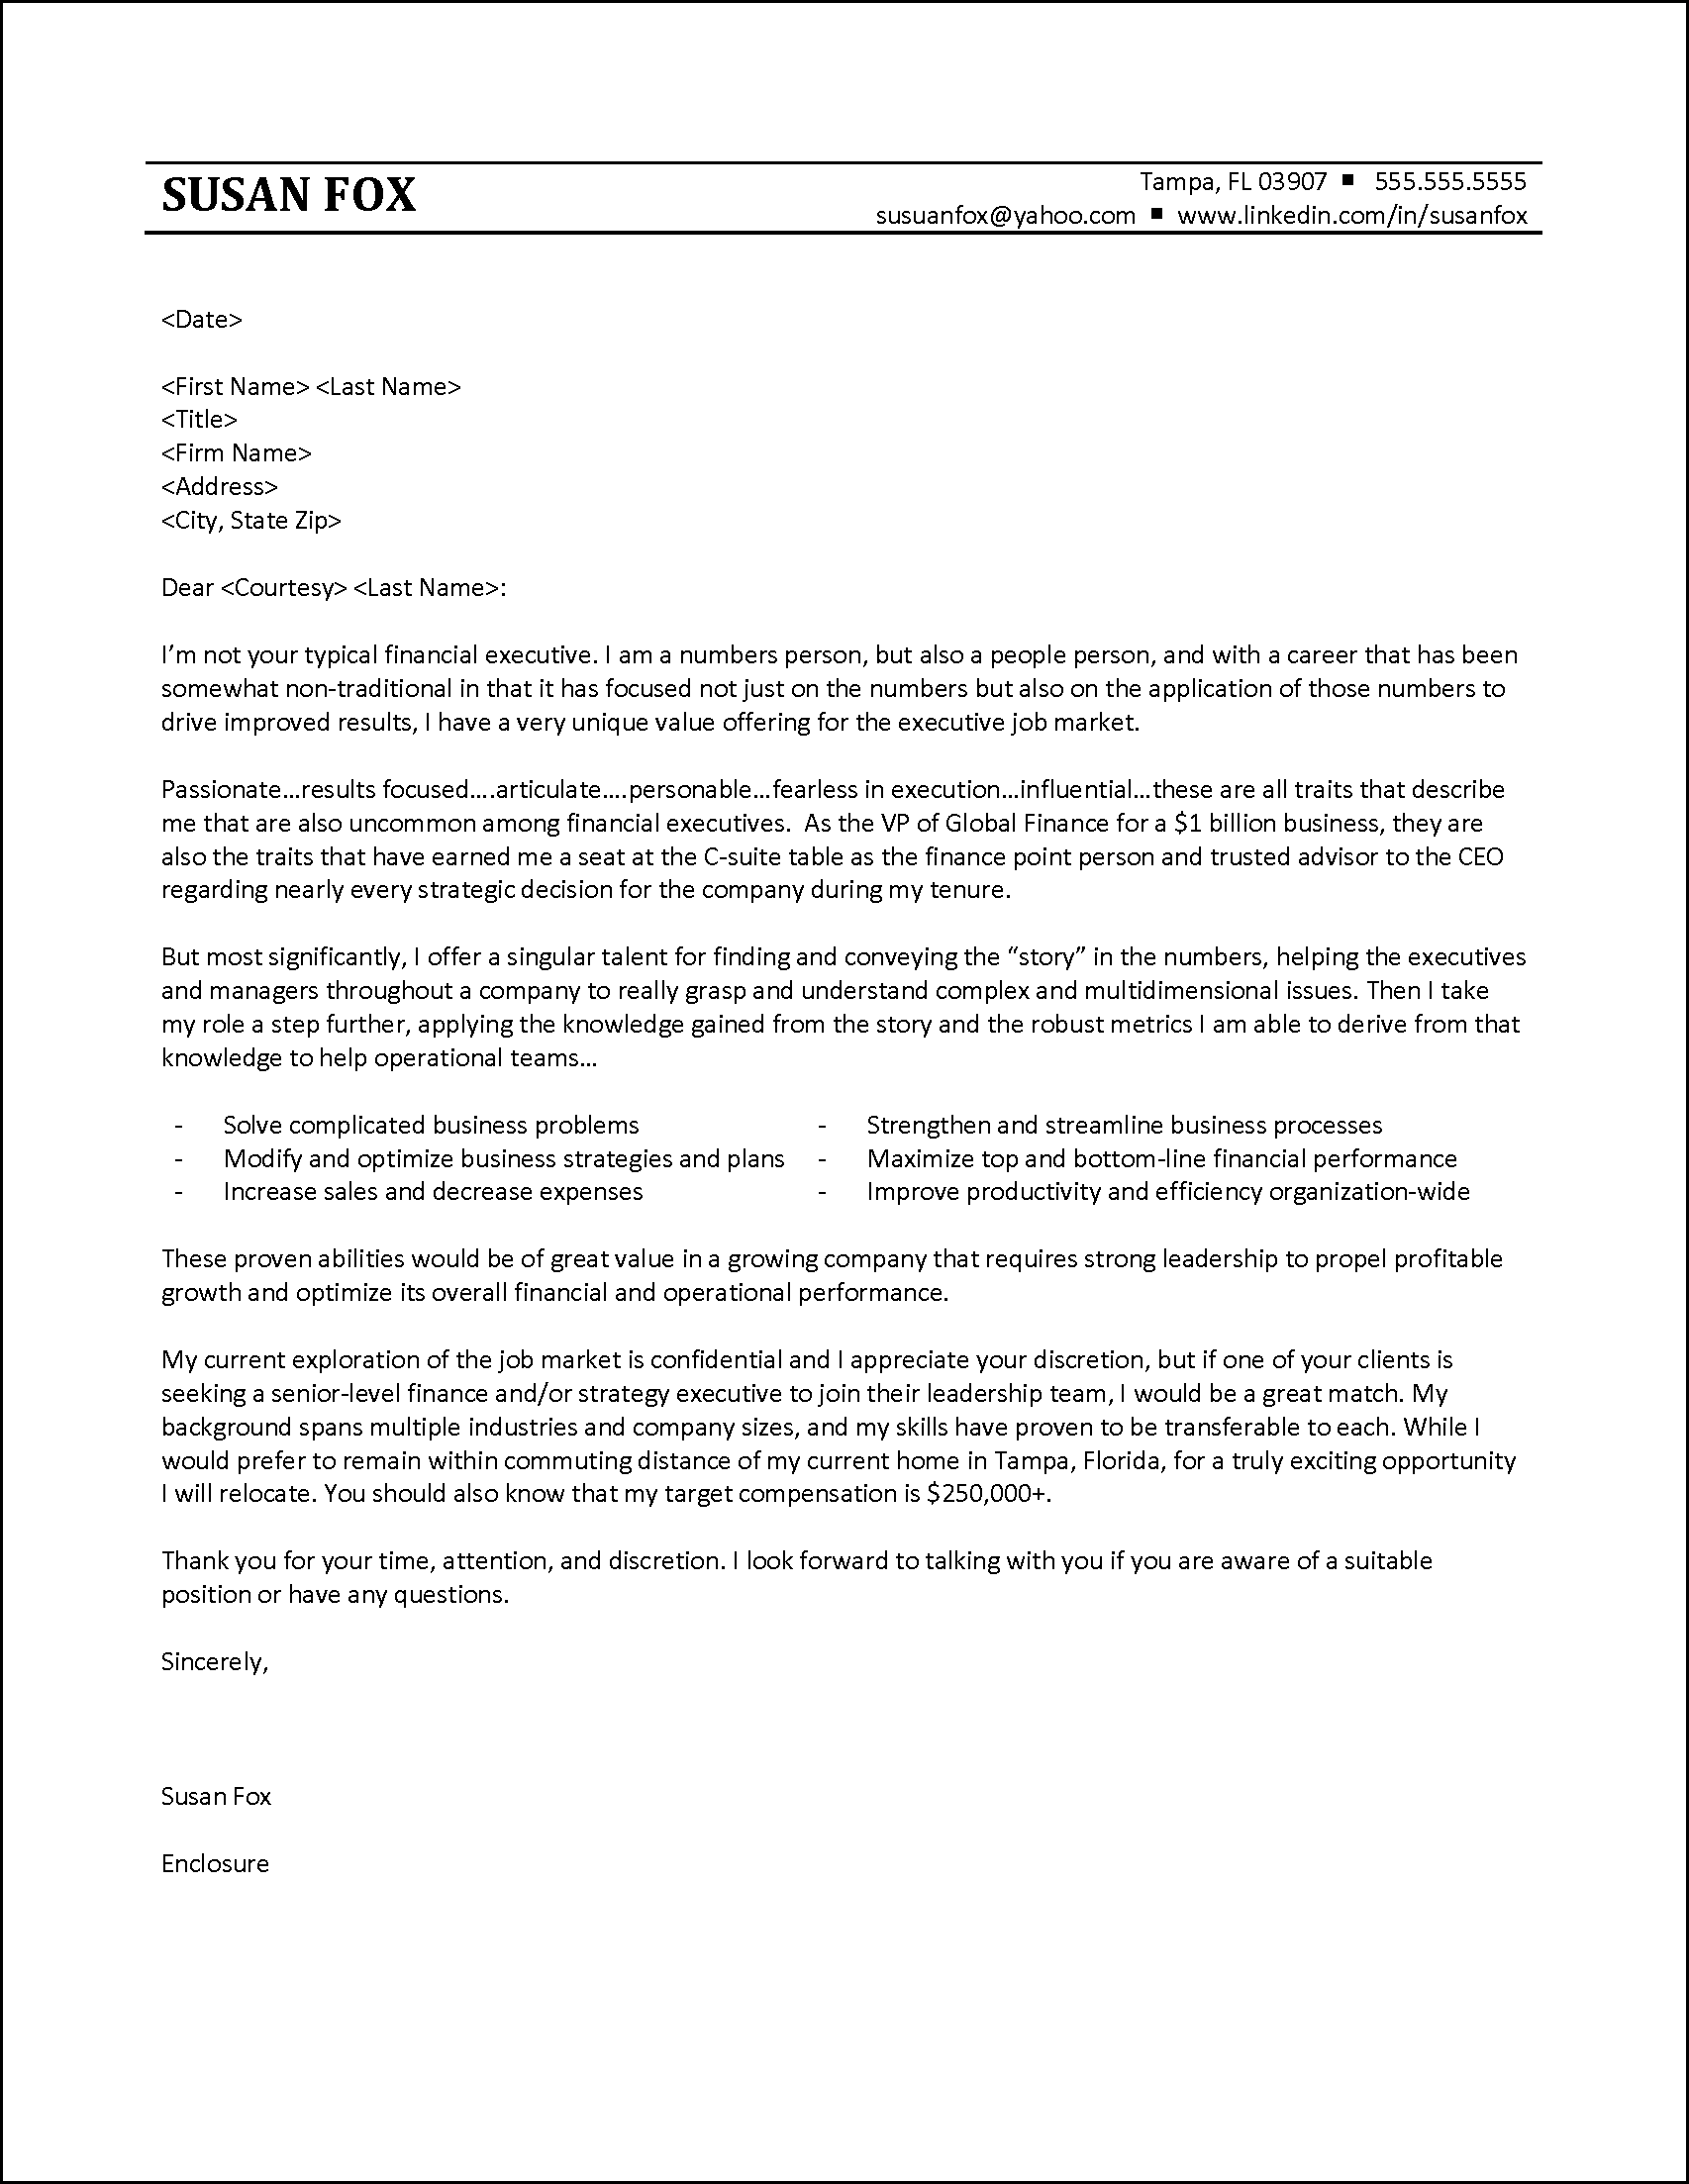 Example Cover Letter To Executive Recruiter  How To Compose A Cover Letter